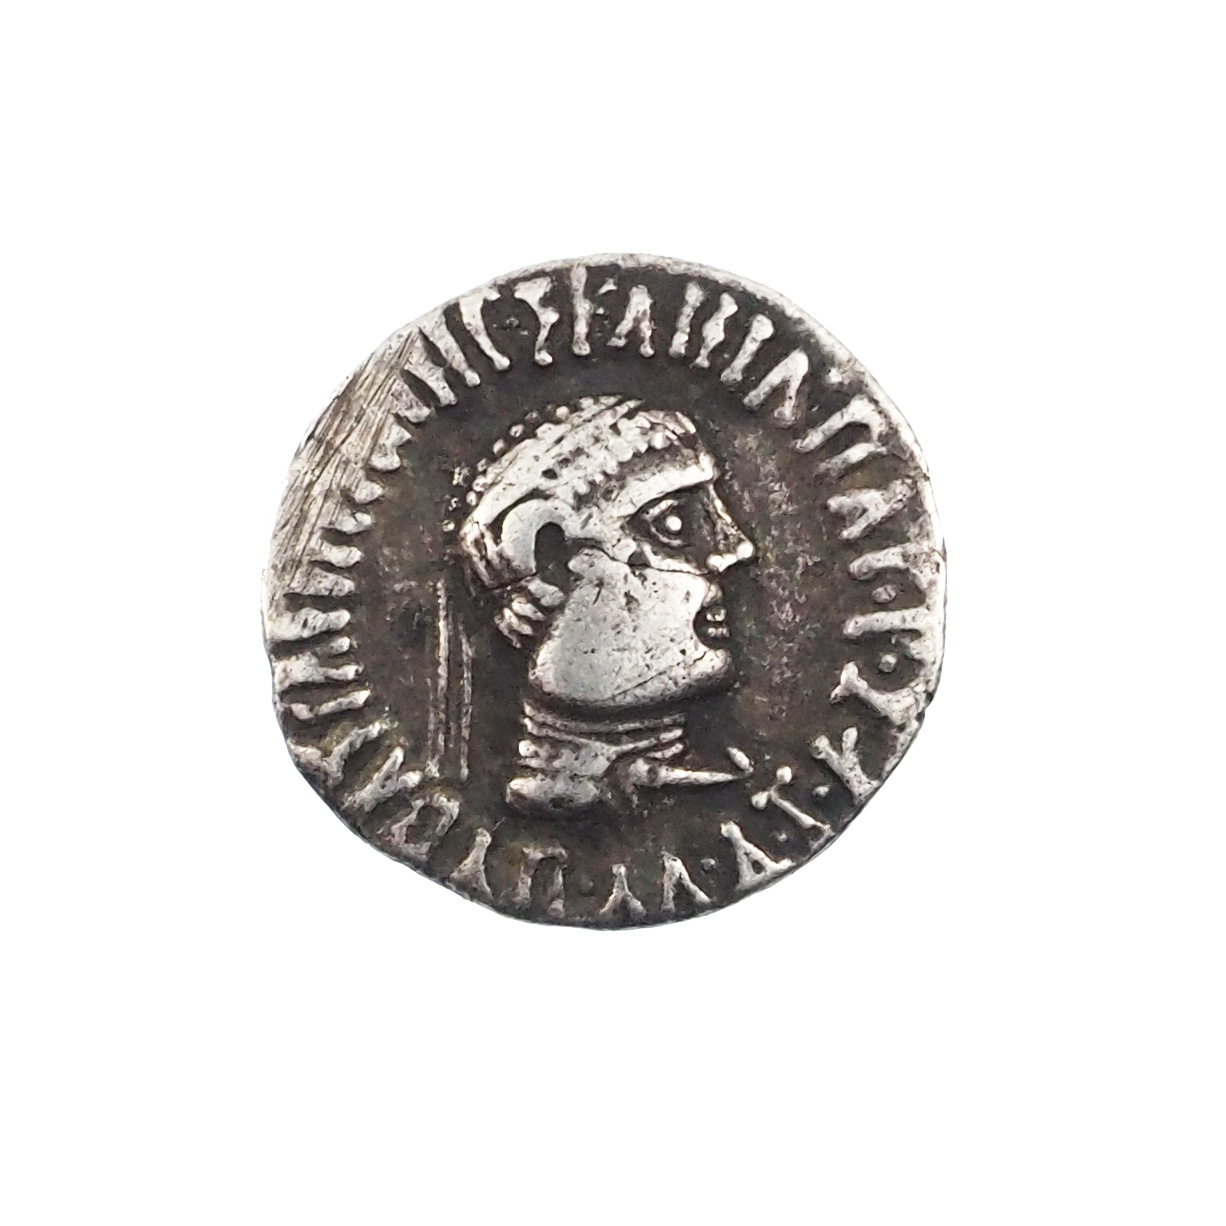 Royaume Bactriane, Appolodotus Ier (80-65), Drachme, Argent.